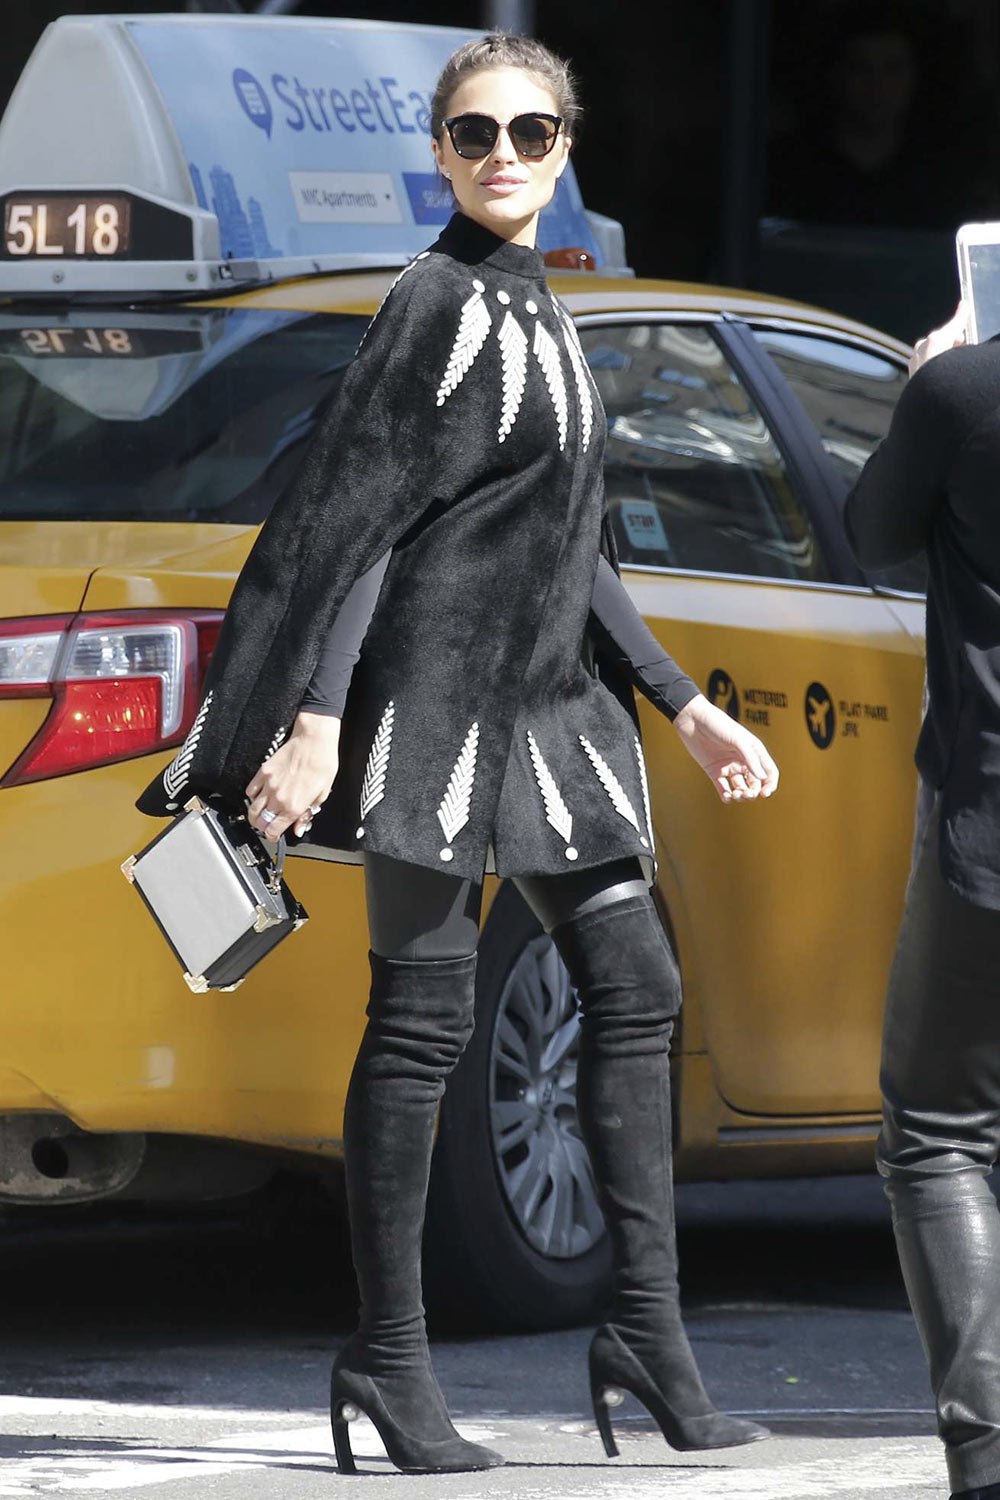 Olivia Culpo on a photoshoot in NYC